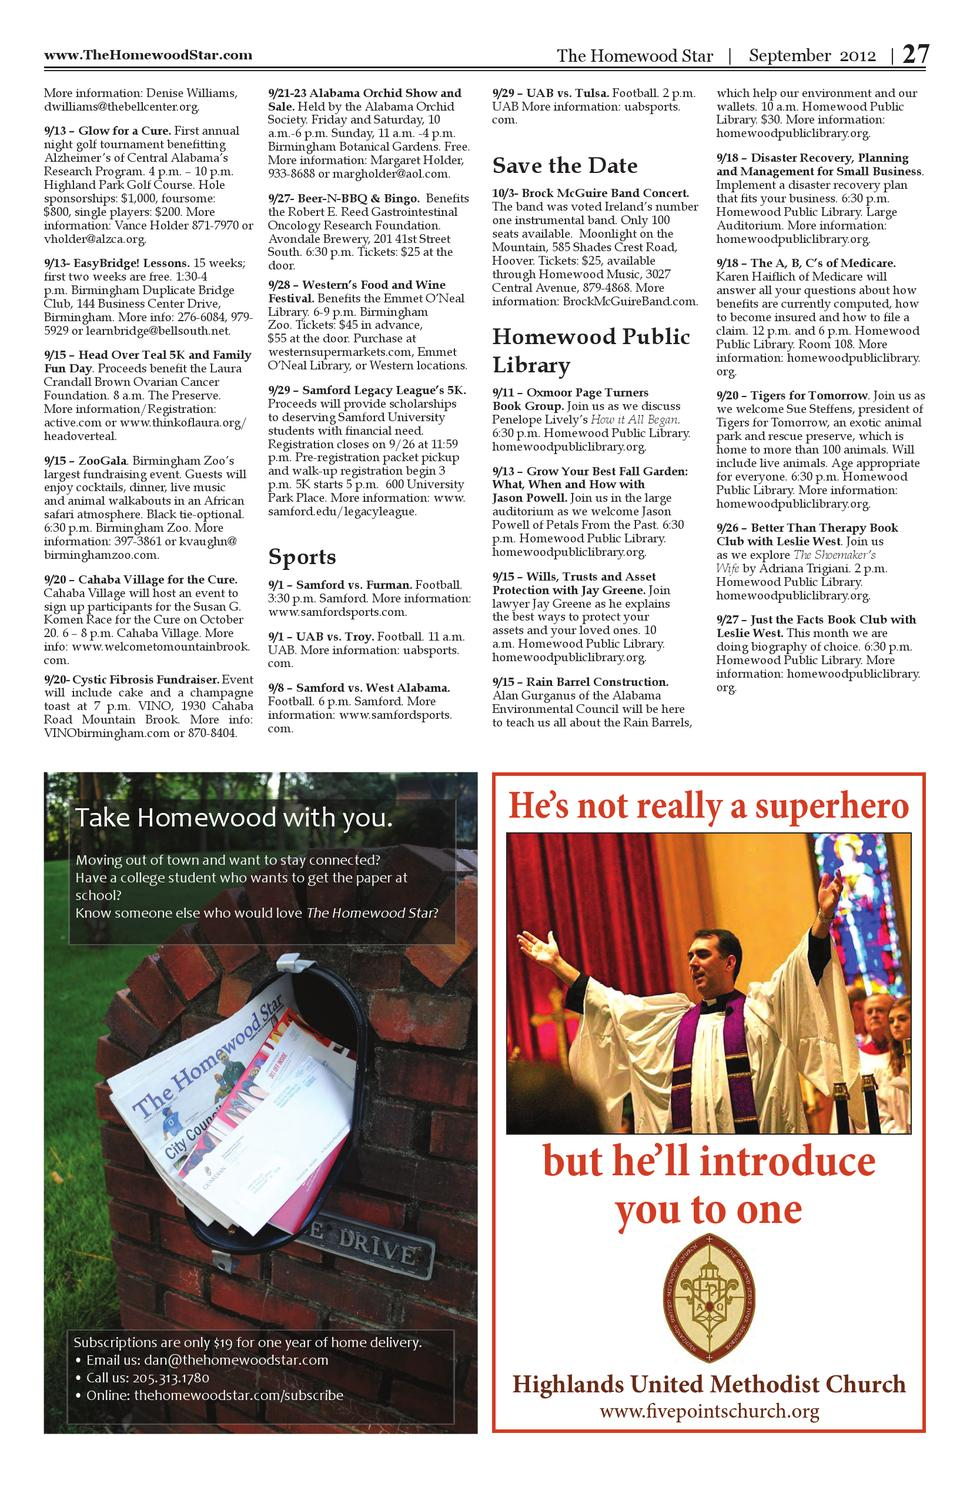 The Homewood Star September 2012 by Starnes Media - issuu